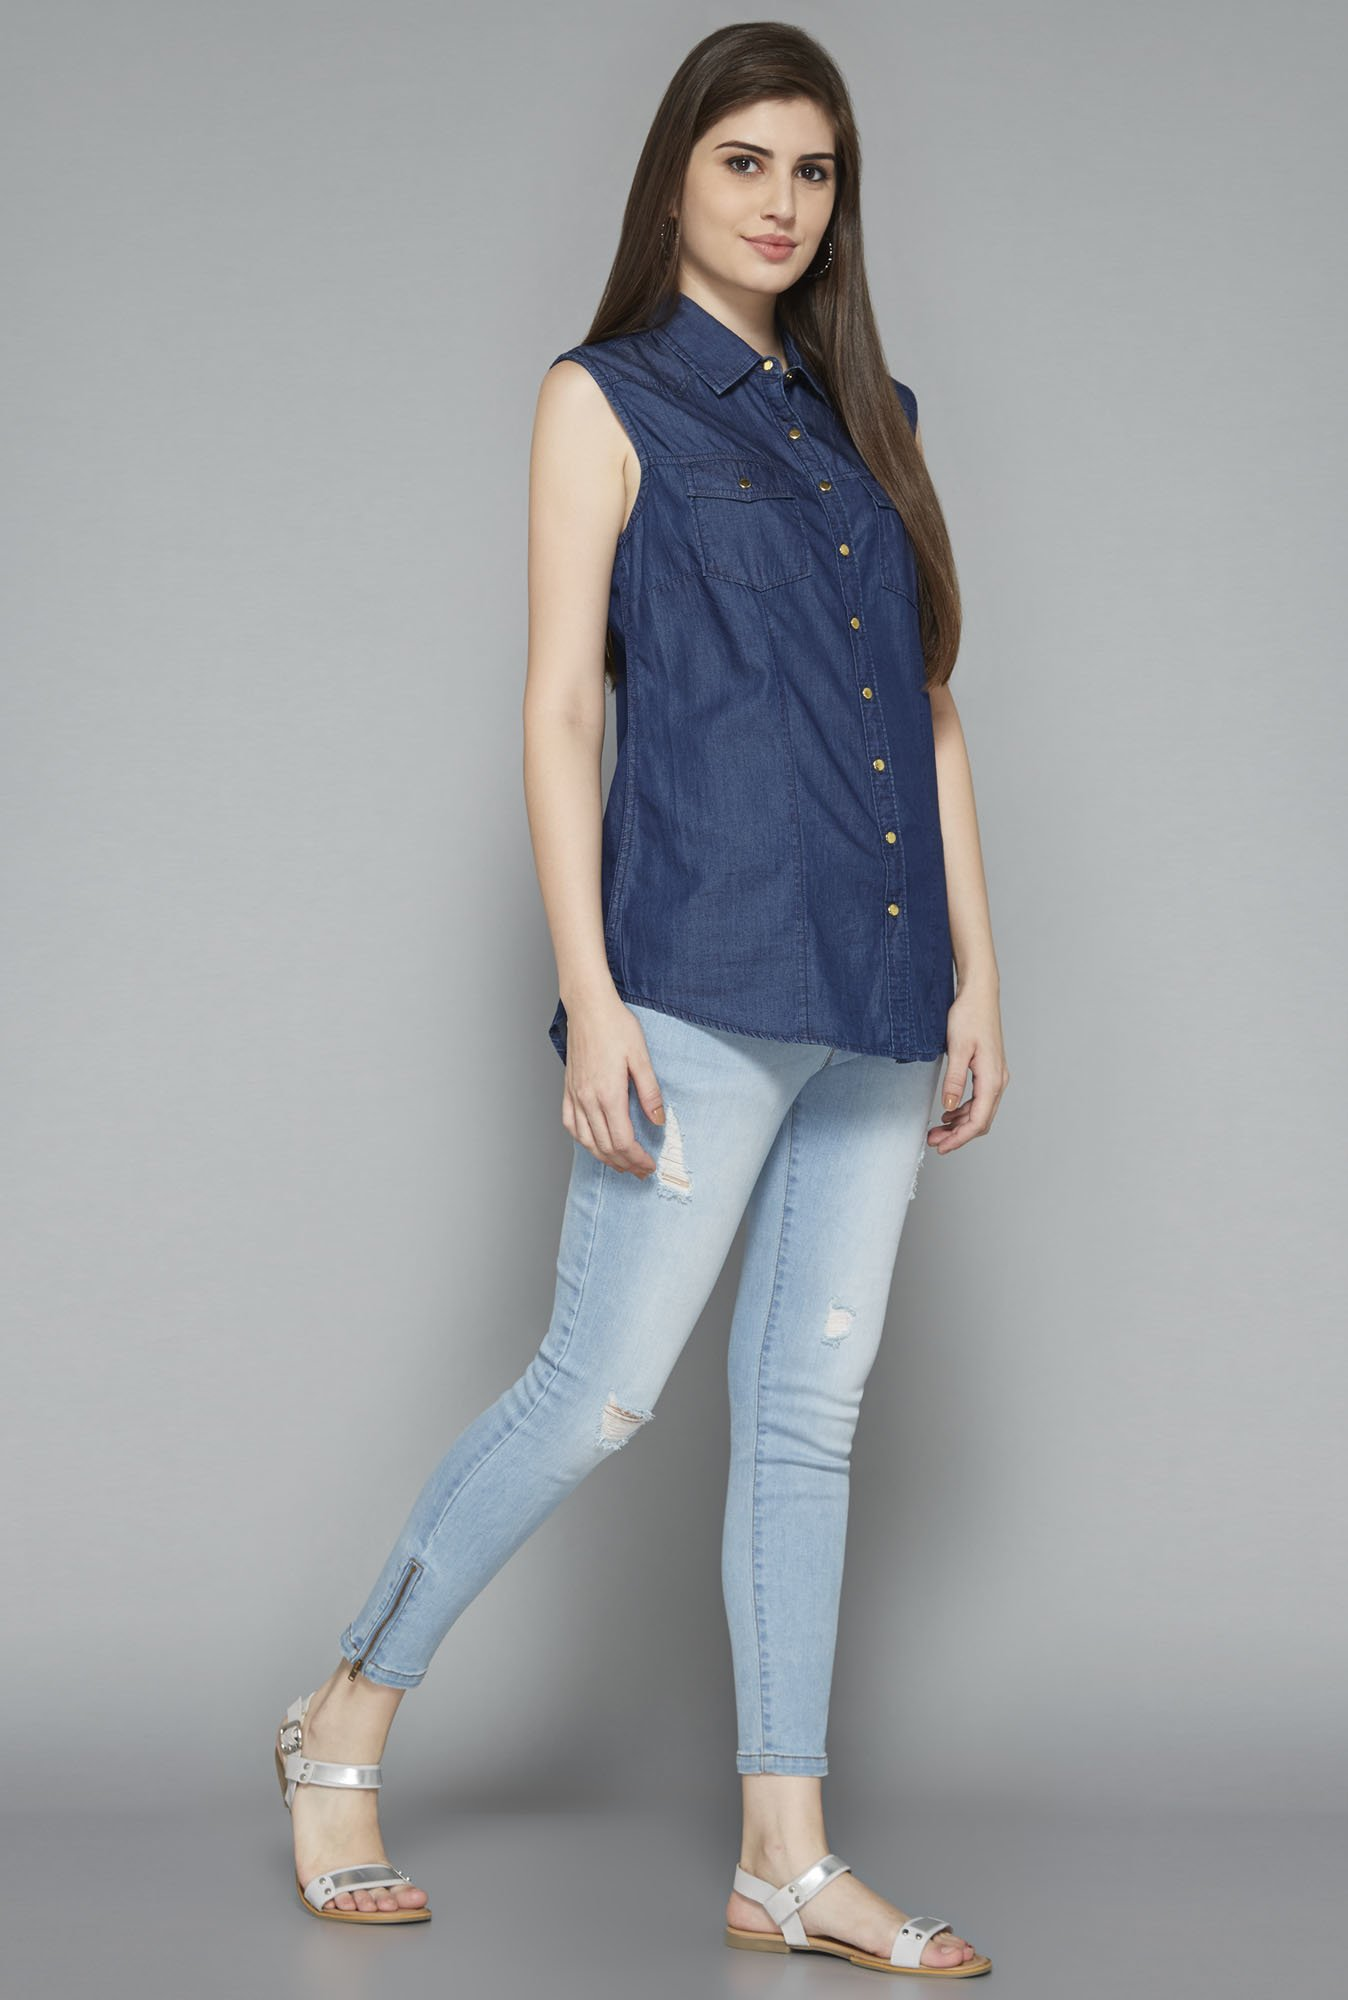 LOV by Westside Navy Sonia Blouse